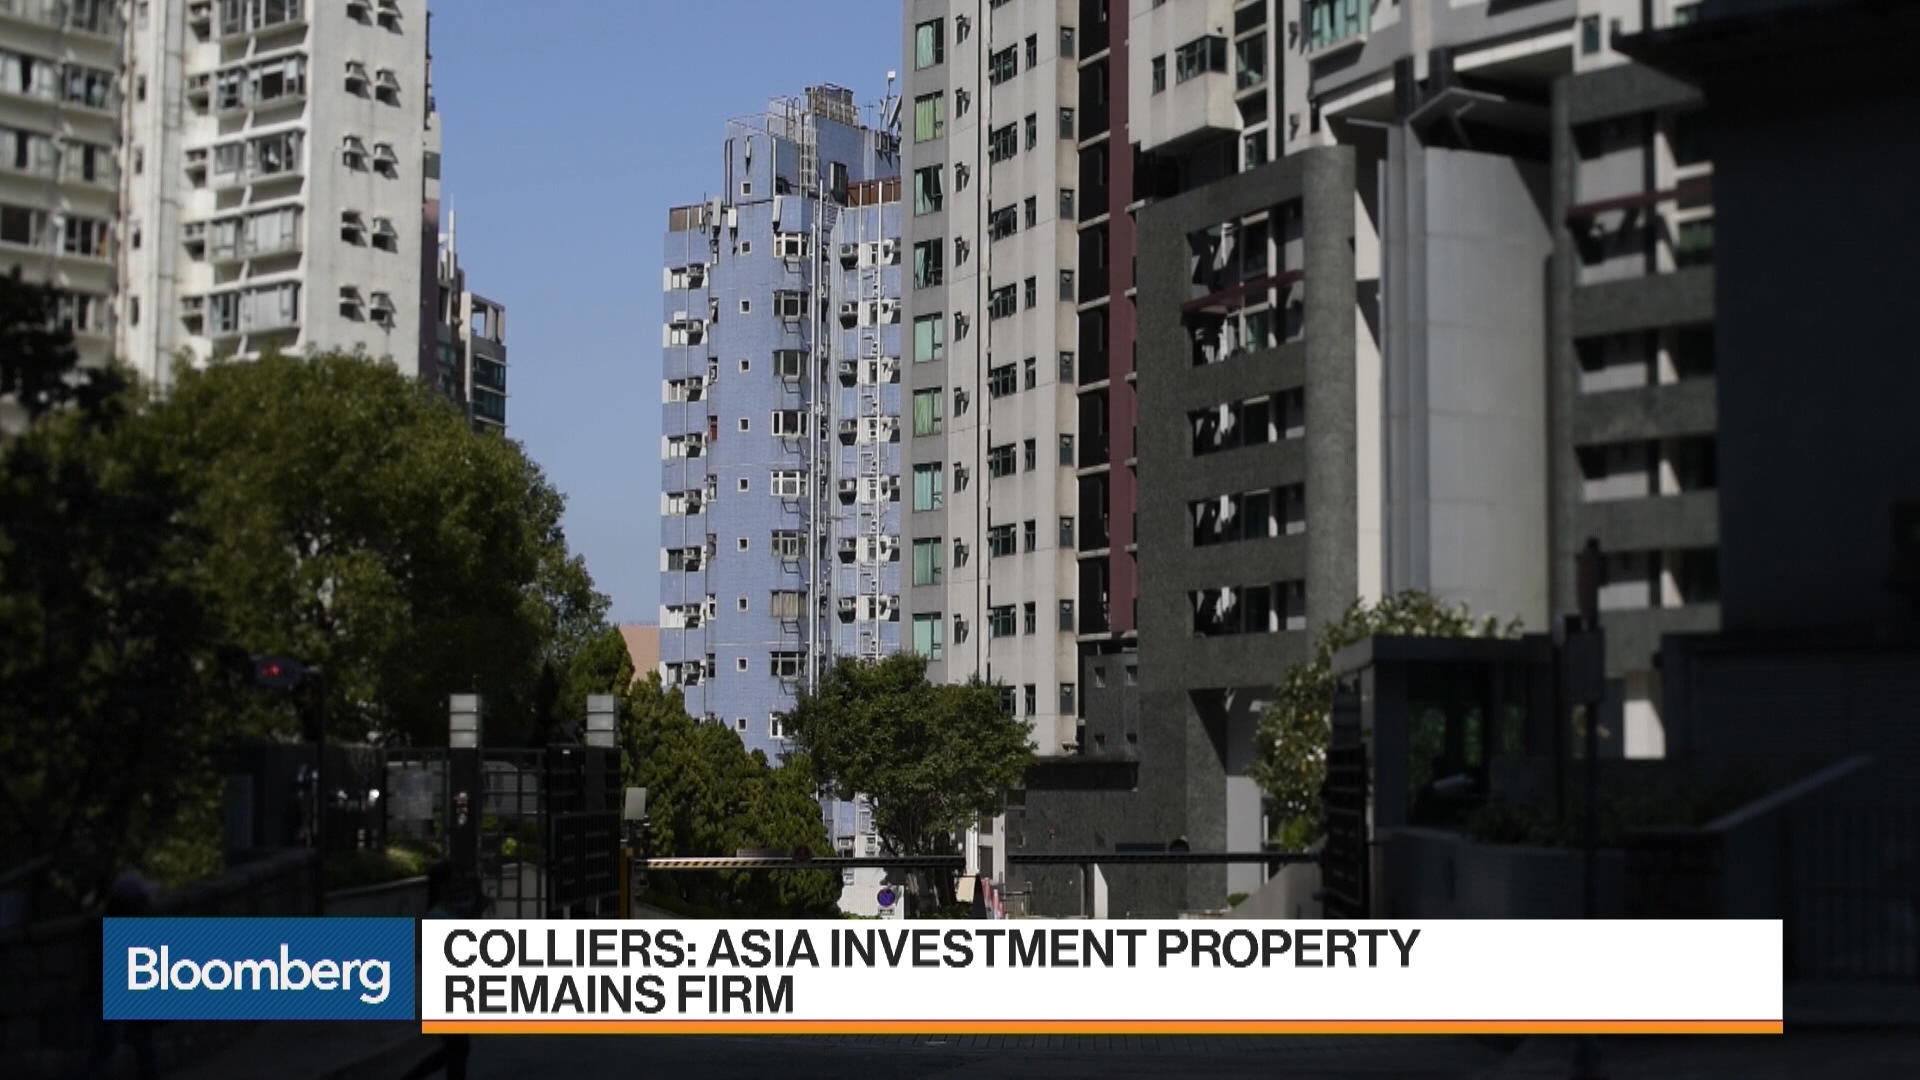 hong kong property markets Global news hong kong's property research reports q3 2017 show a strong quarter in q3 and reveals a positive outlook for the property market.